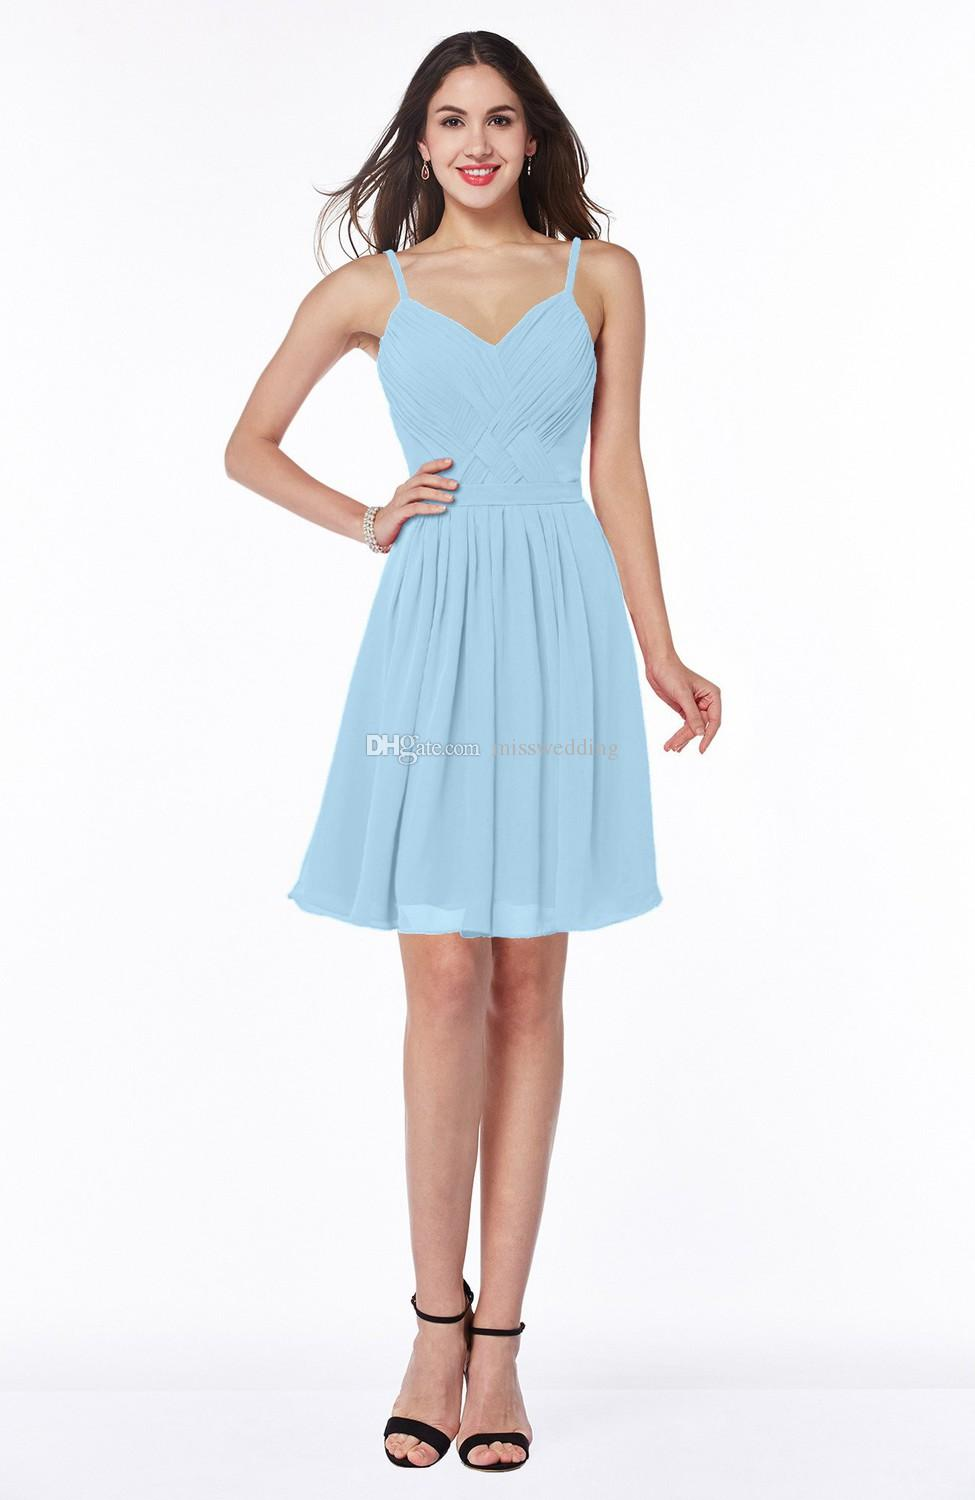 Simple design pretty ladies dress cheap spaghetti straps light simple design pretty ladies dress cheap spaghetti straps light blue chiffon dress for bridesmaid short length dress short bridesmaid dresses maid of honor ombrellifo Image collections